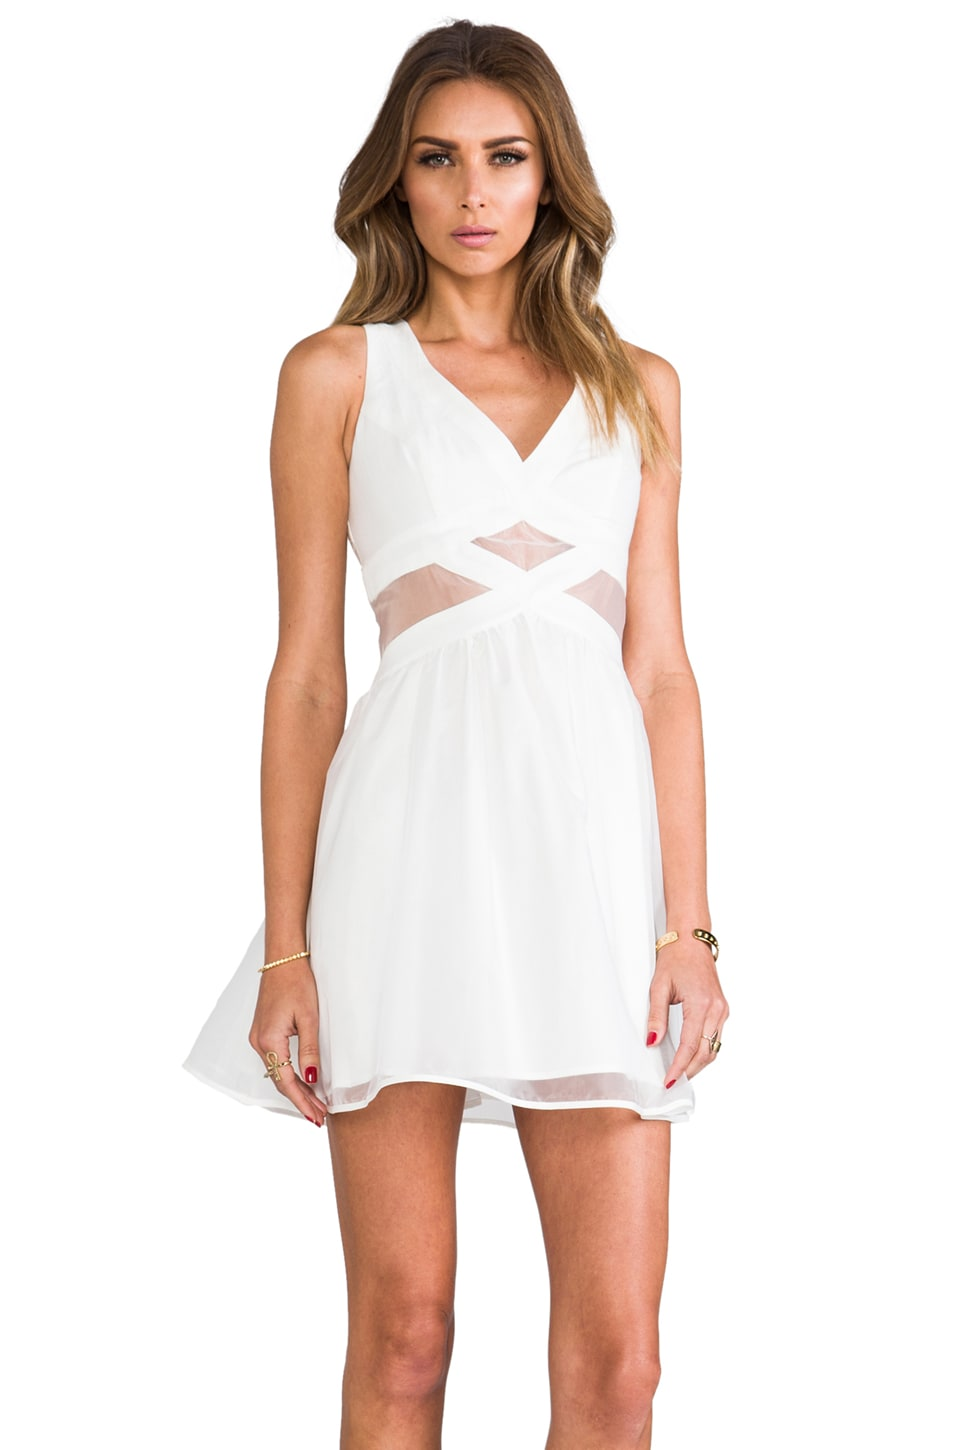 Finders Keepers Broken Heart Dress in Ivory/White